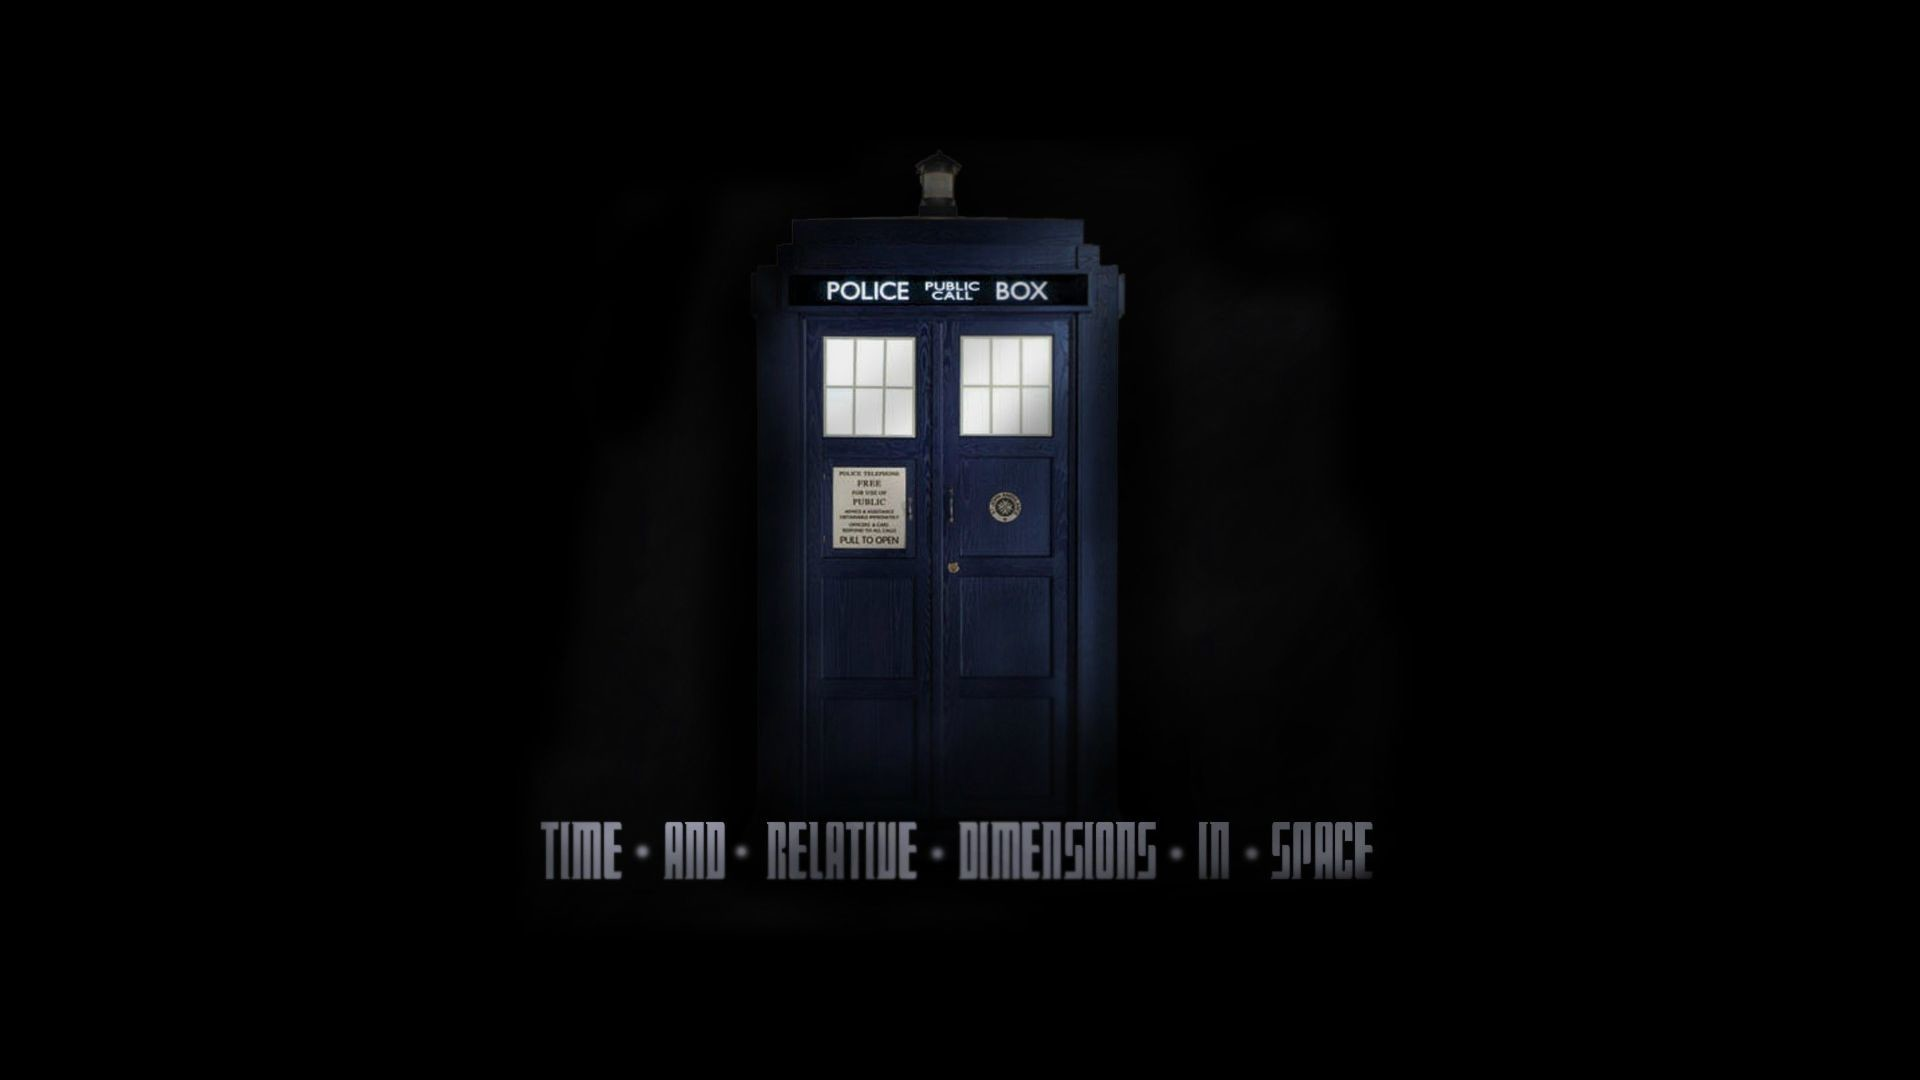 Doctor who wallpapers HD A13 – Dr Who Wallpapers | Doctor who backgrounds |  doctor who